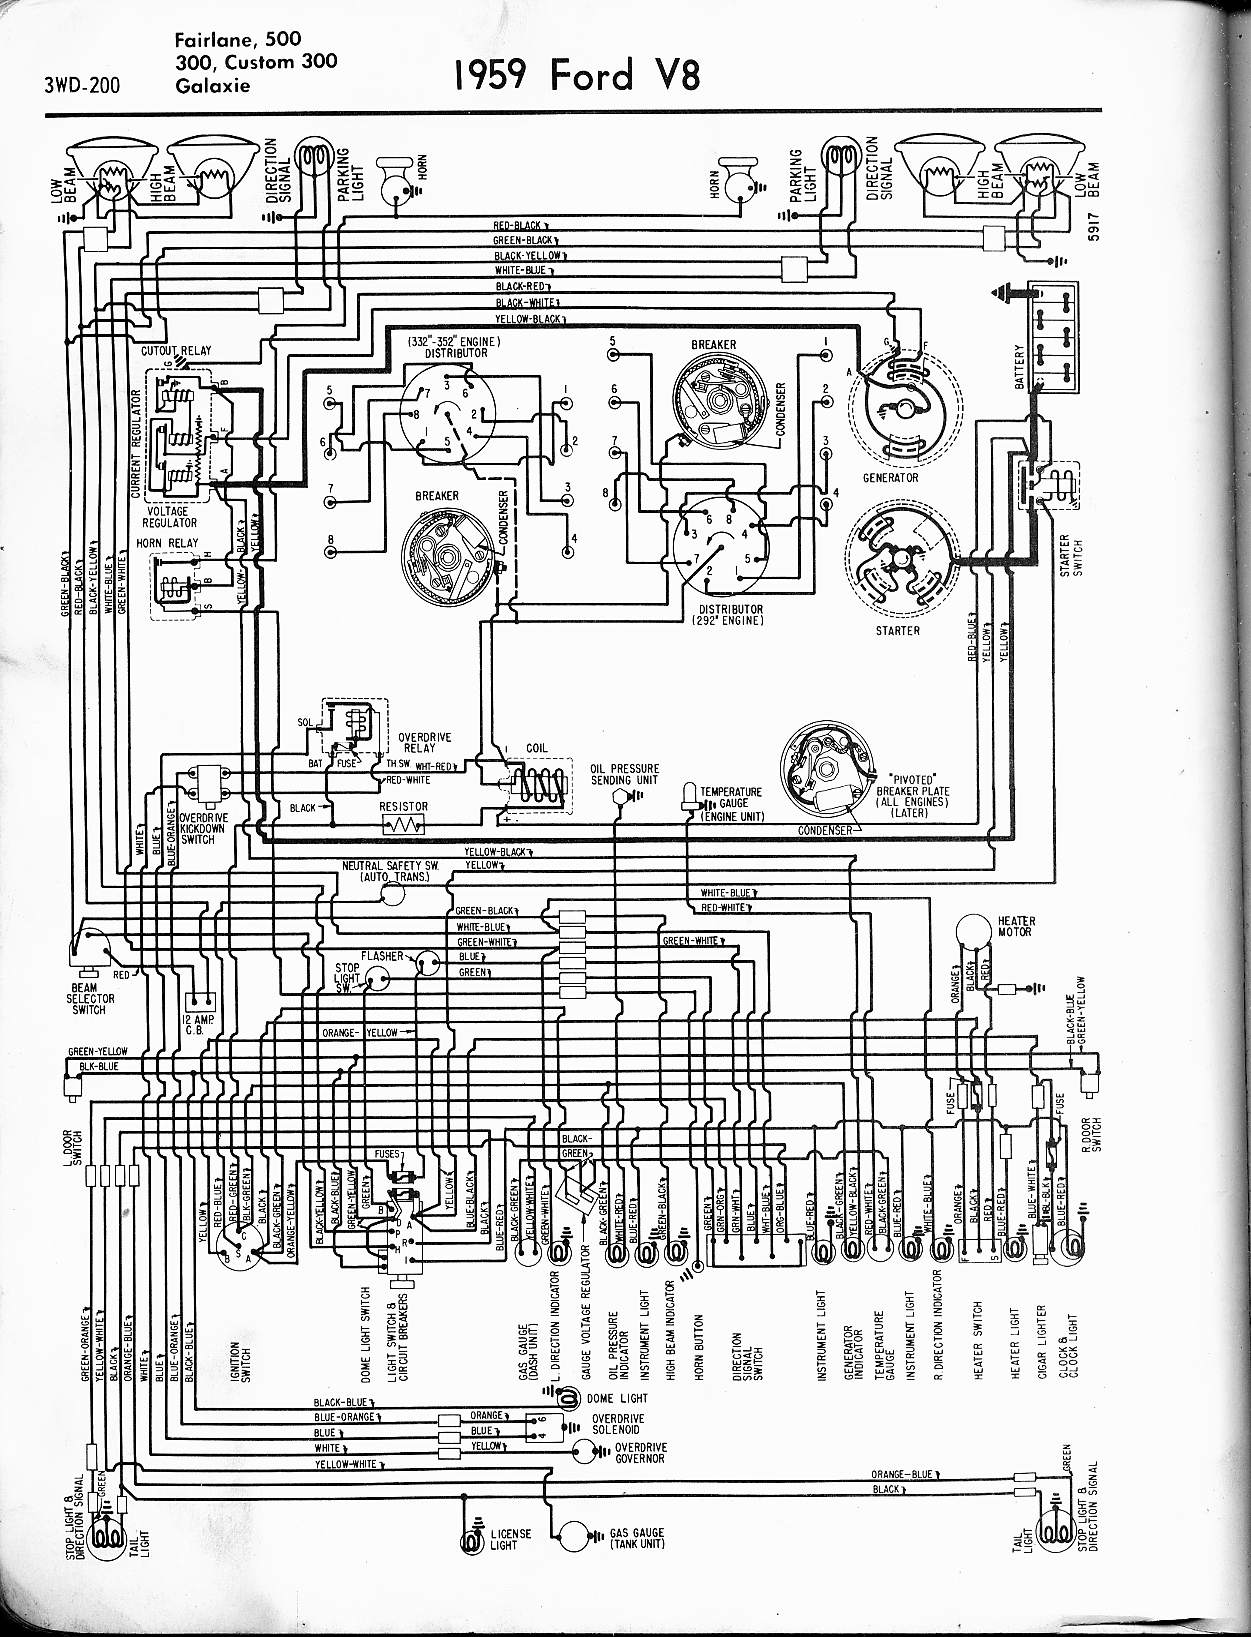 1976 ford truck steering column wiring diagram schematics wiring rh seniorlivinguniversity co 1969 ford f100 steering column wiring diagram 1965 ford f100 steering column wiring diagram